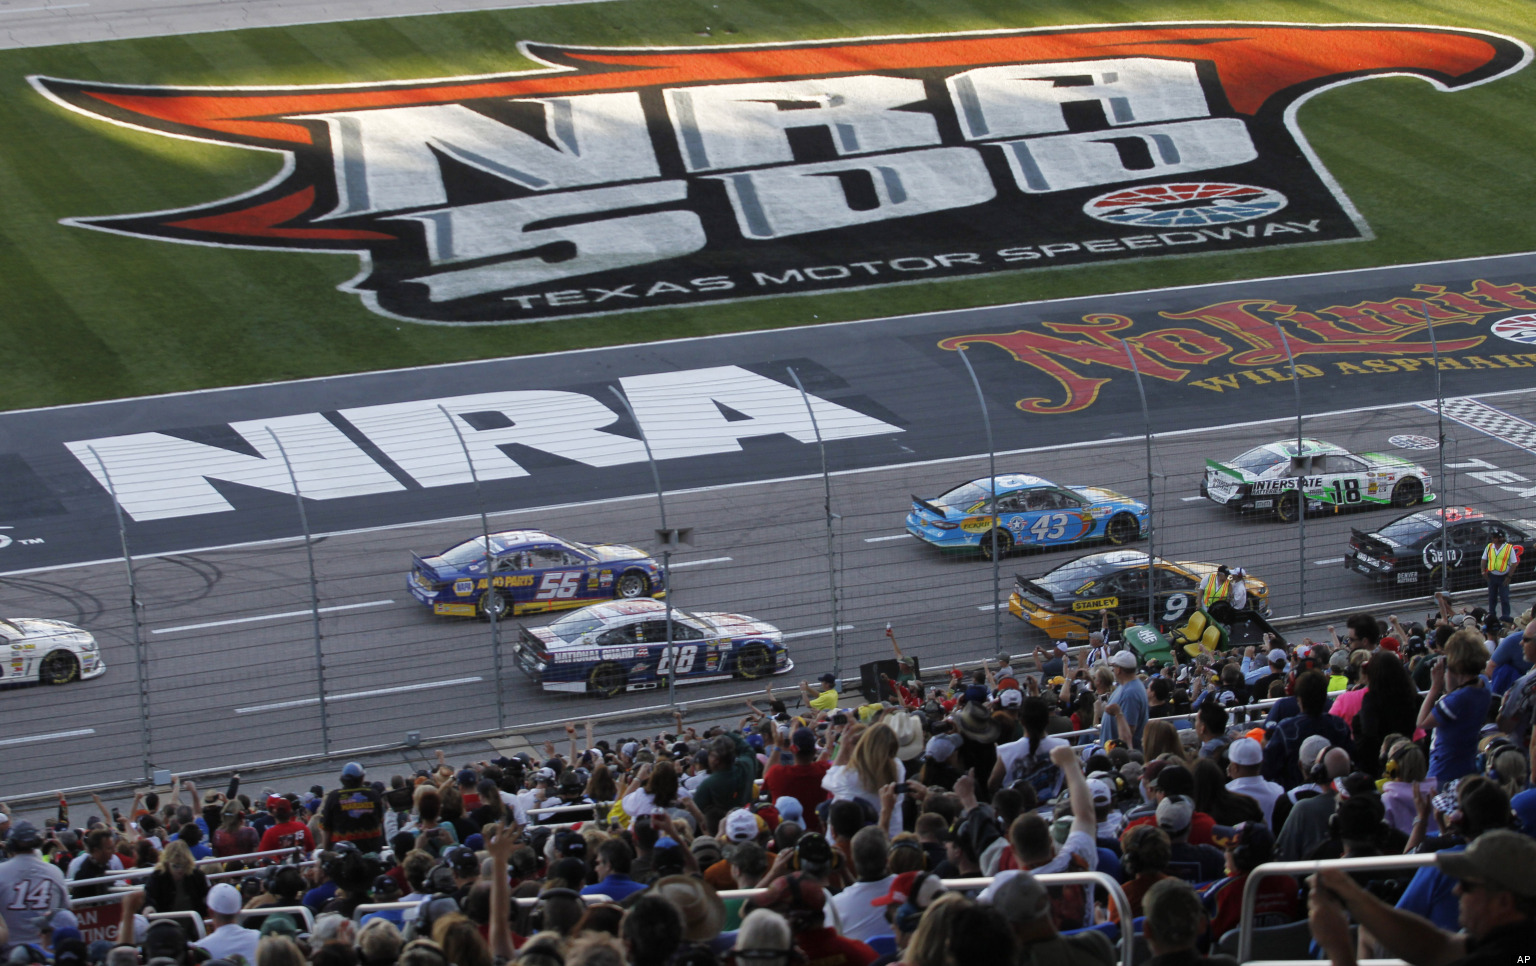 Man Shoots Himself To Death At NRA-Sponsored NASCAR Race